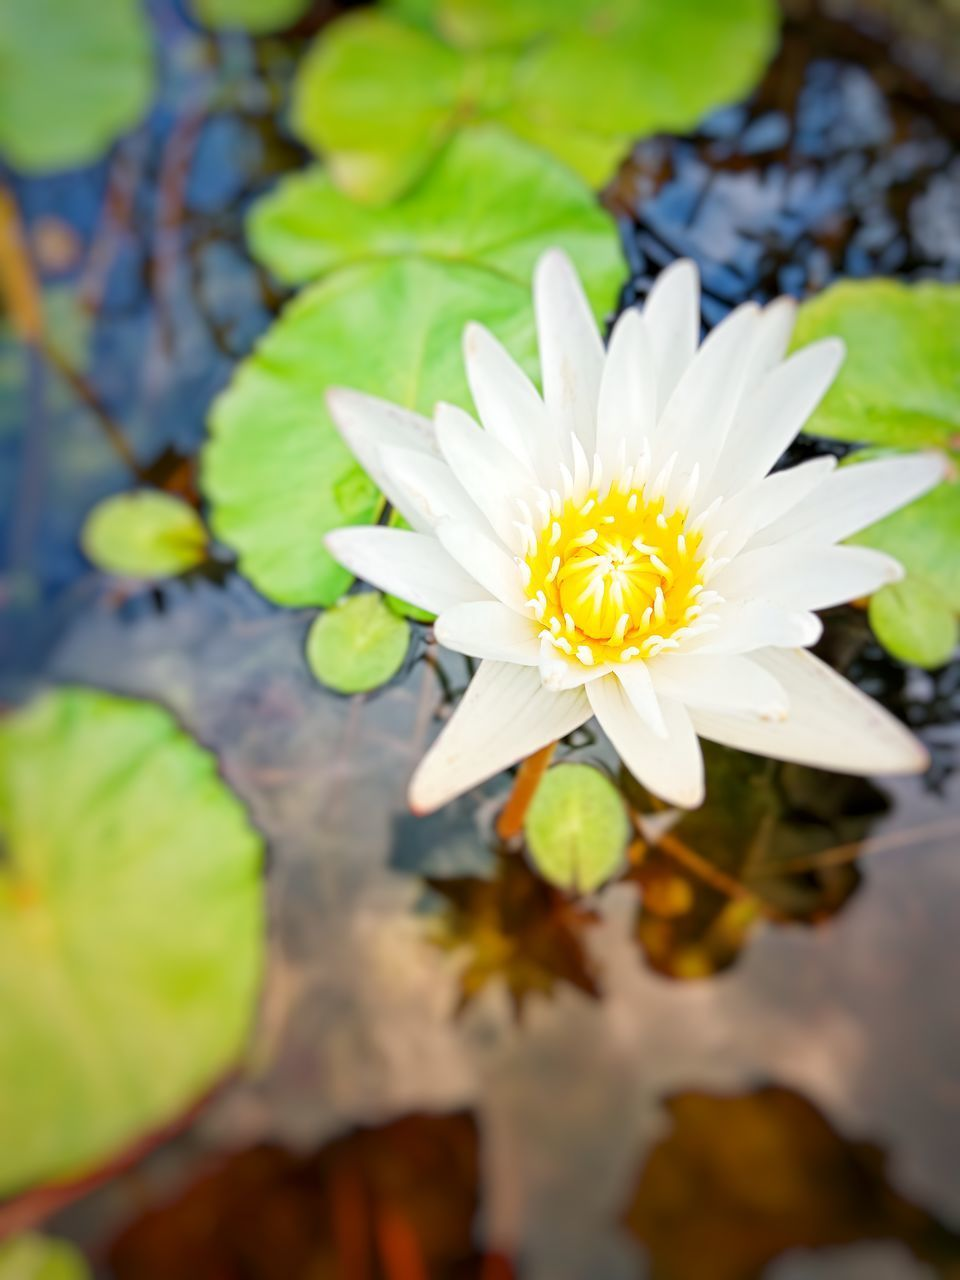 flower, flowering plant, vulnerability, fragility, plant, freshness, beauty in nature, petal, inflorescence, growth, flower head, close-up, nature, water, water lily, yellow, white color, lake, day, leaf, no people, outdoors, pollen, floating on water, lotus water lily